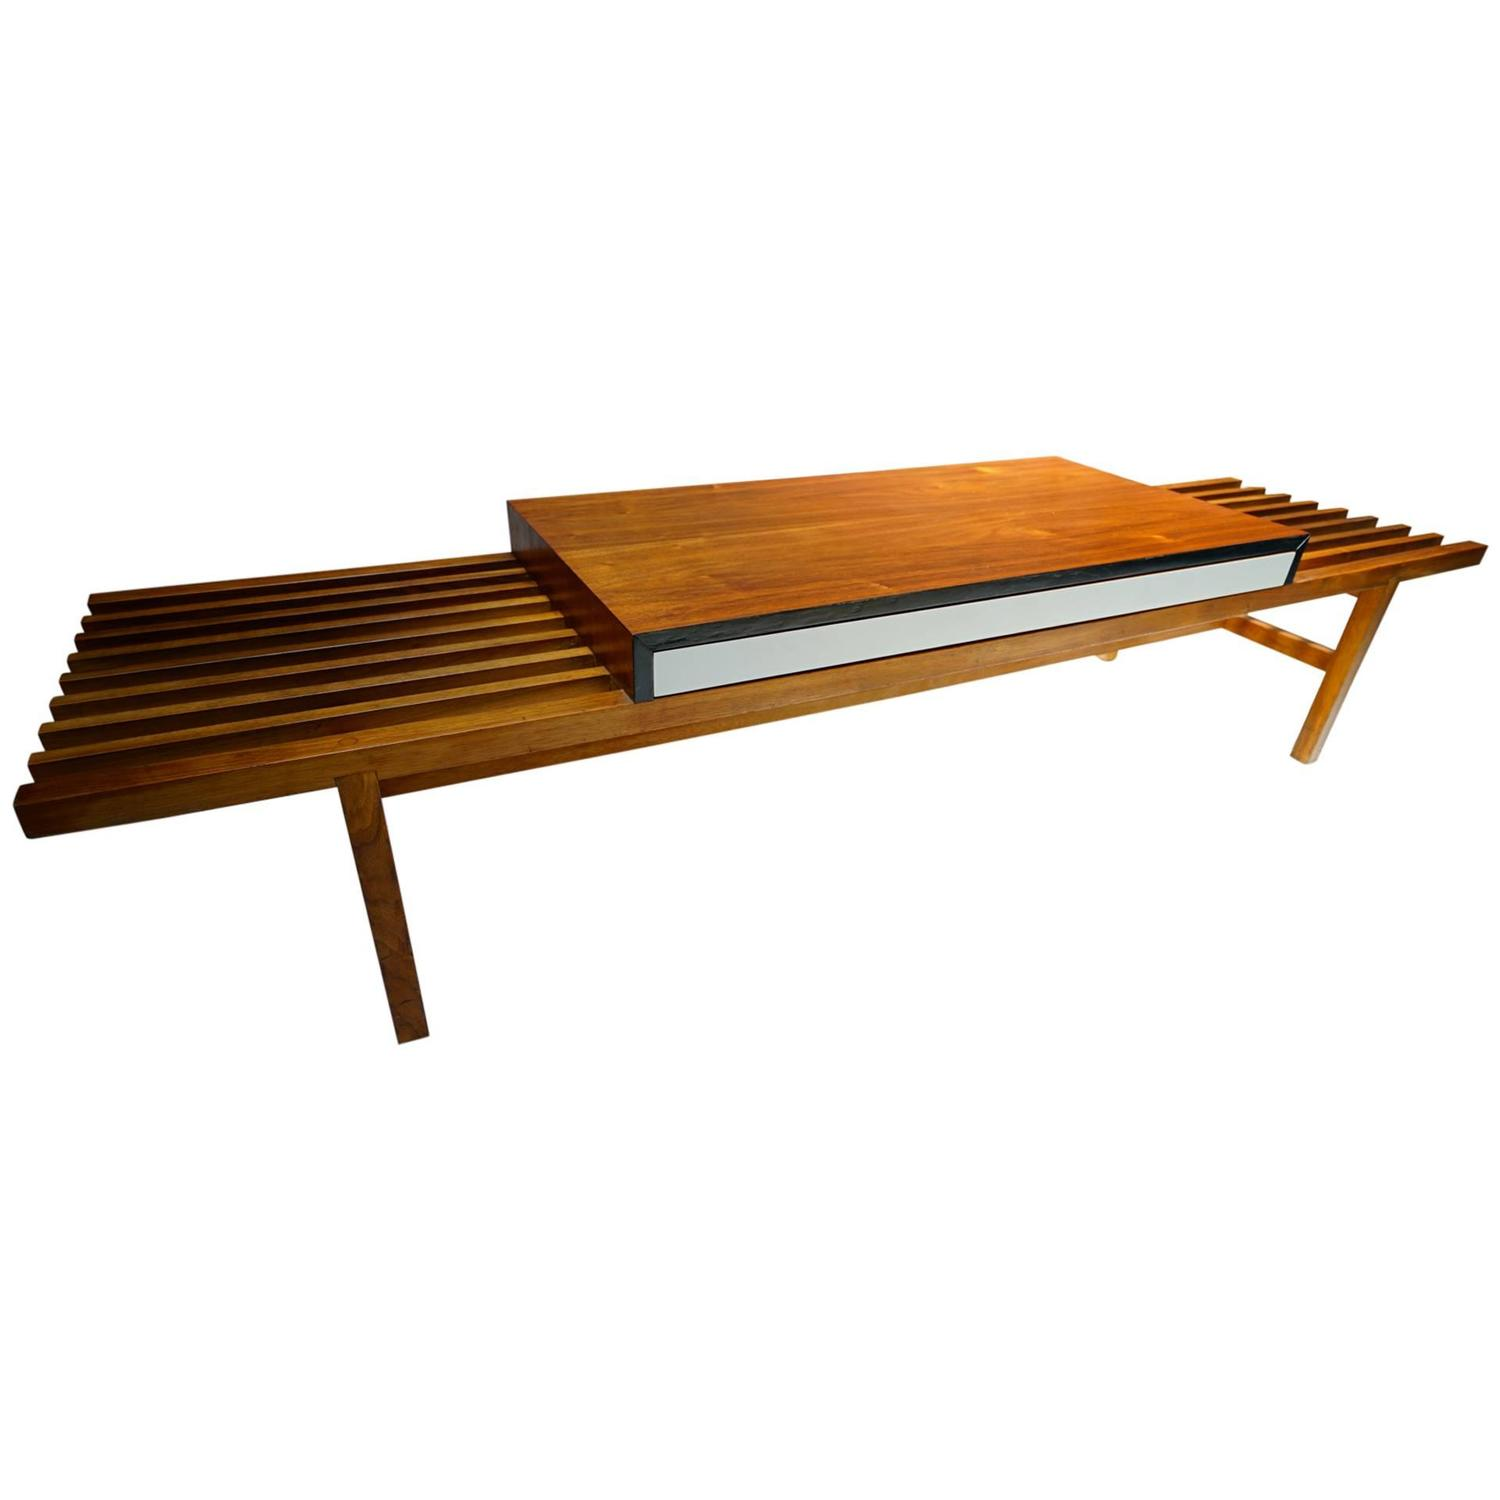 Slat Bench Coffee Table Expanding Mid Century Modern Slat Bench Or Coffee Table Mid Century